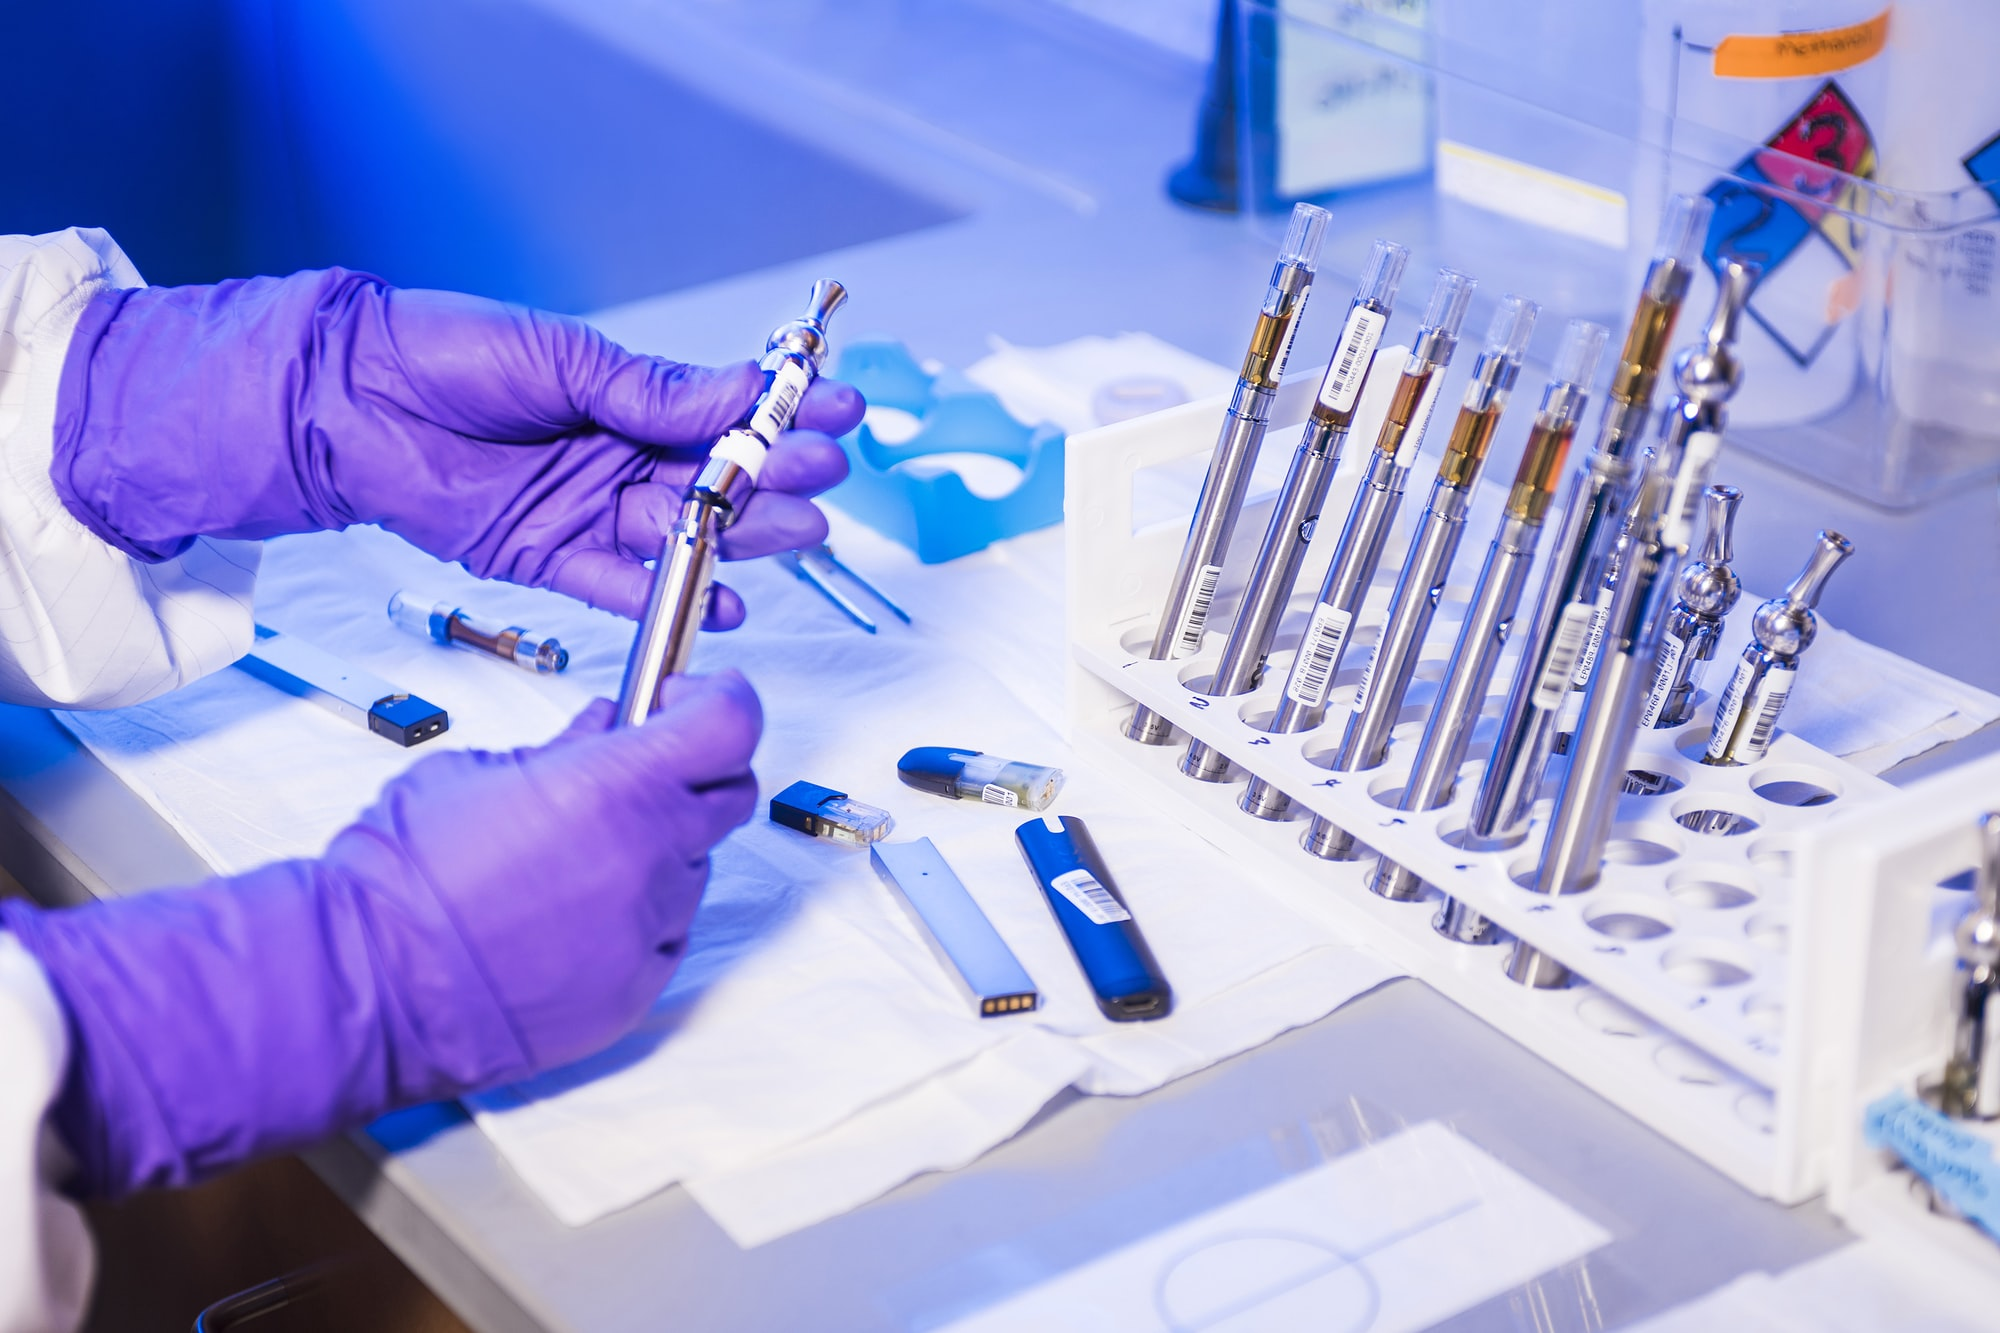 Here you see the gloved hands of a Centers for Disease Control and Prevention (CDC) laboratory technician working with electronic cigarettes, referred to as e-cigarettes, or e-cigs, and vaping pens, while inside a laboratory environment.